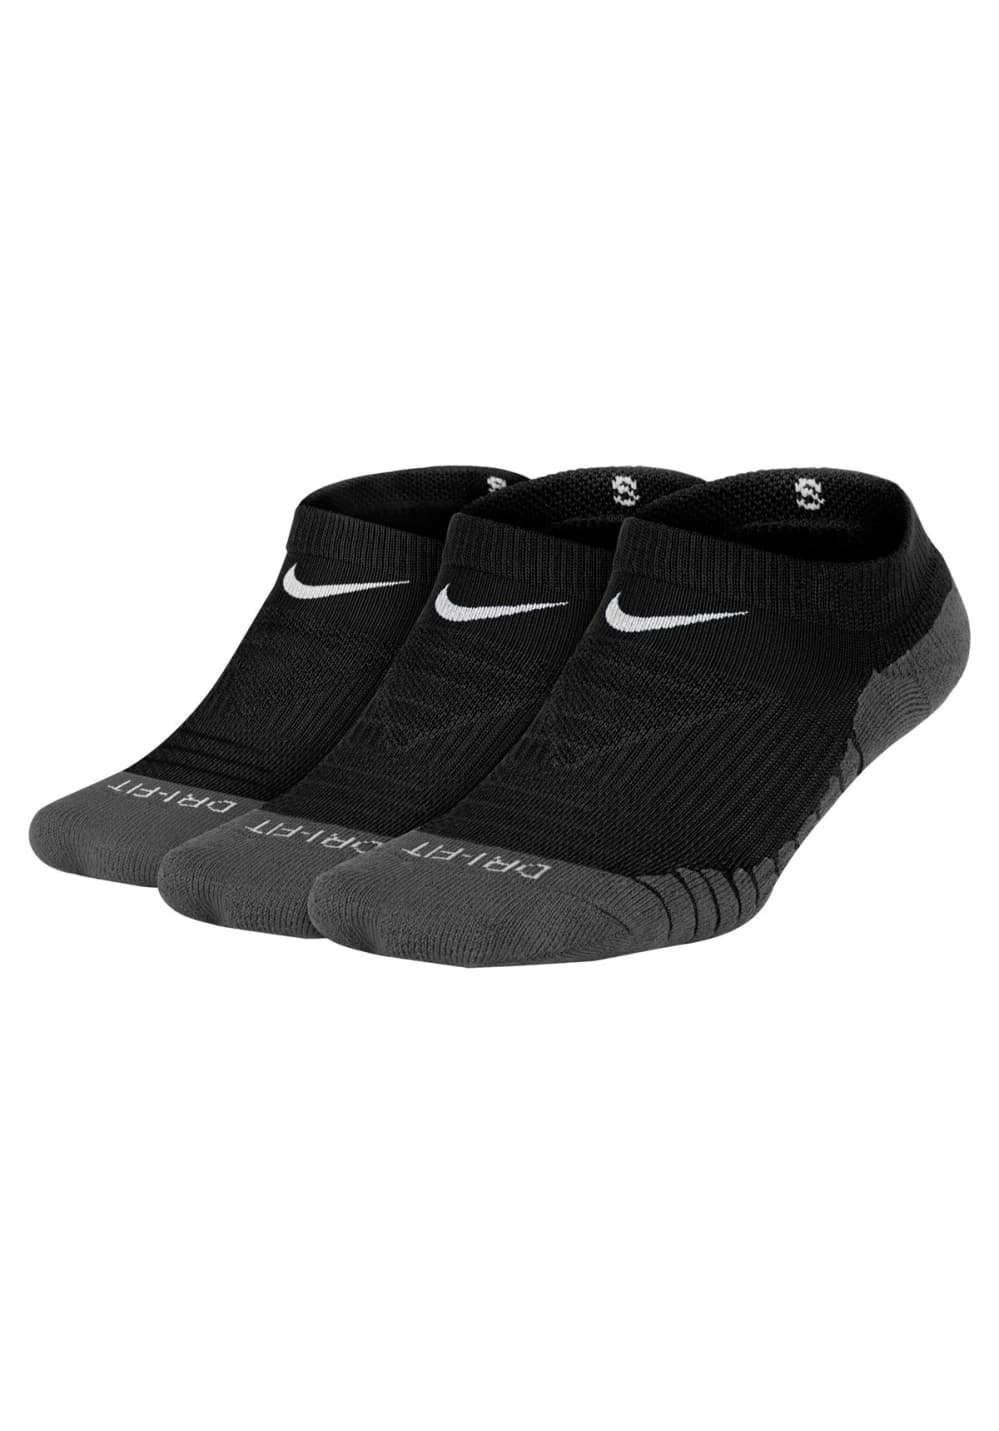 Nike Kids' Dry Cushion No-Show Sock (3 Pair) - Laufsocken für Kinder Unisex - S